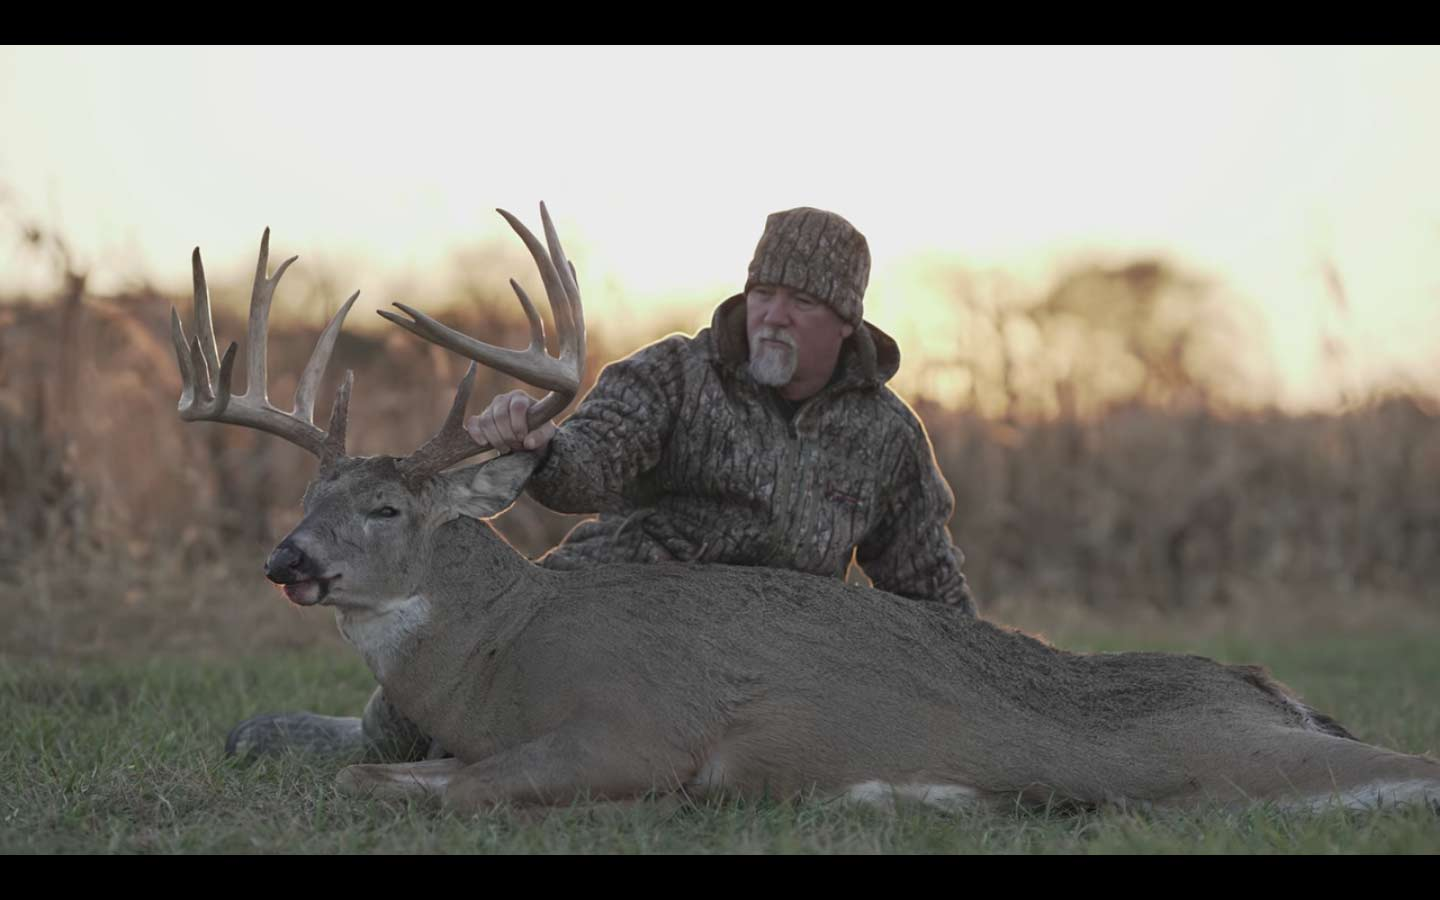 A hunter kneels next to a dropped whitetail deer and holds its antlers.